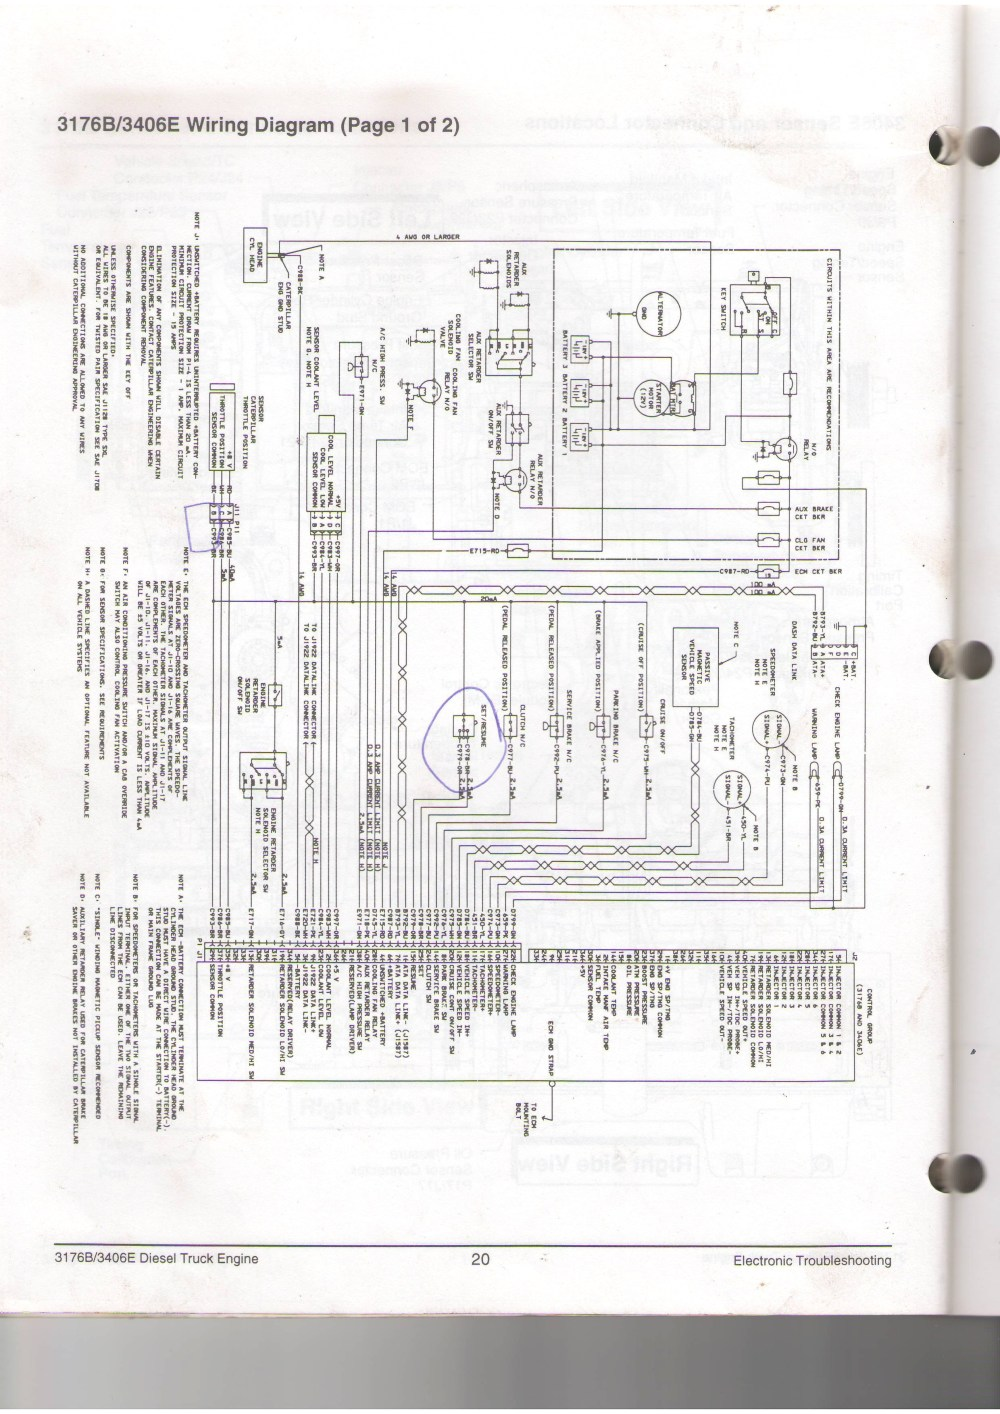 medium resolution of cat ecm pin wiring diagram 70 c10 wiring diagram schema cat c10 ecm wiring diagram